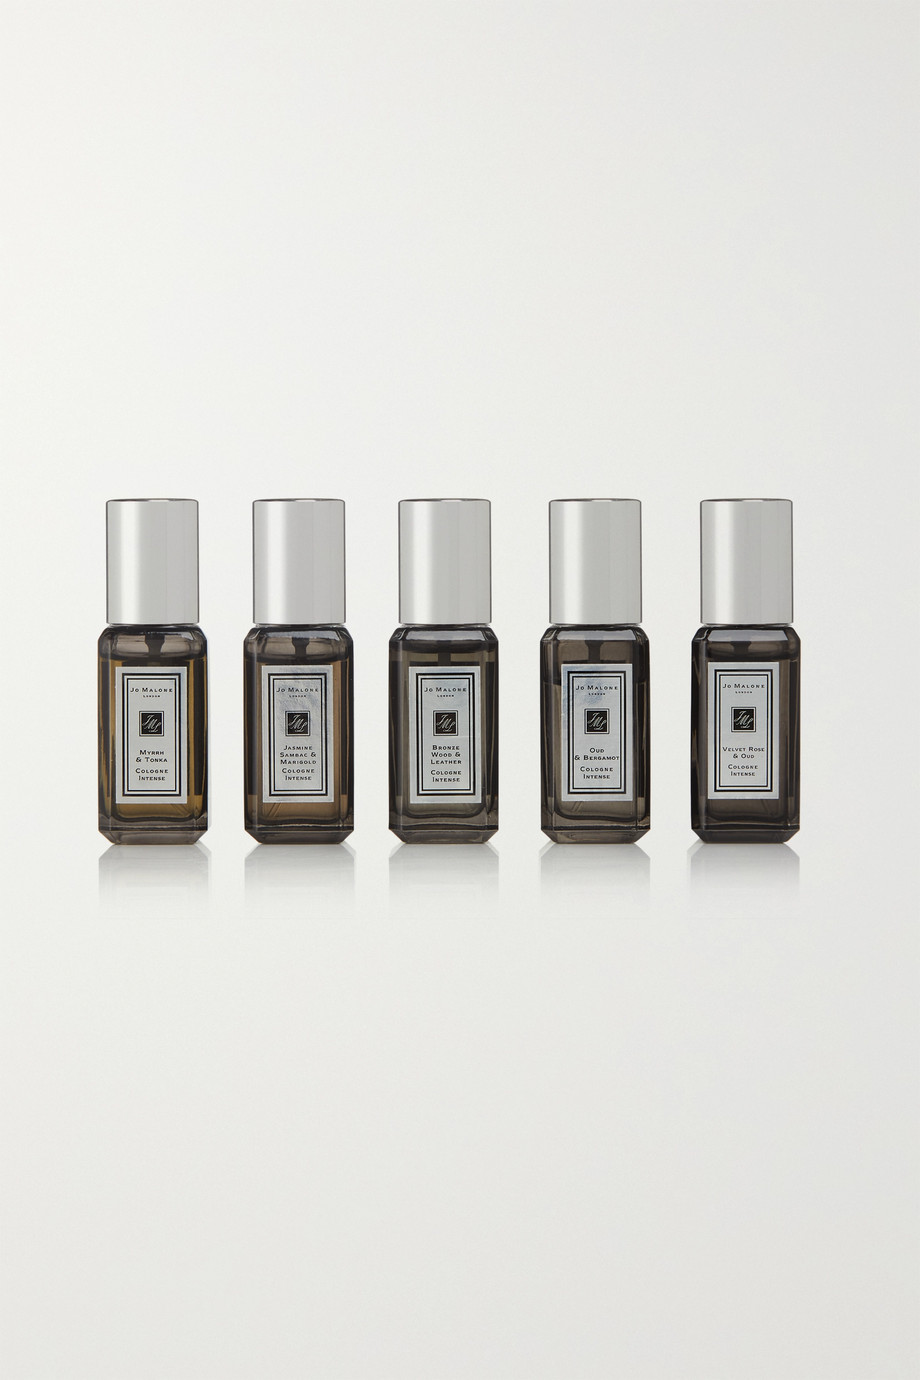 Jo Malone London Cologne Intense Collection, 5 x 9ml